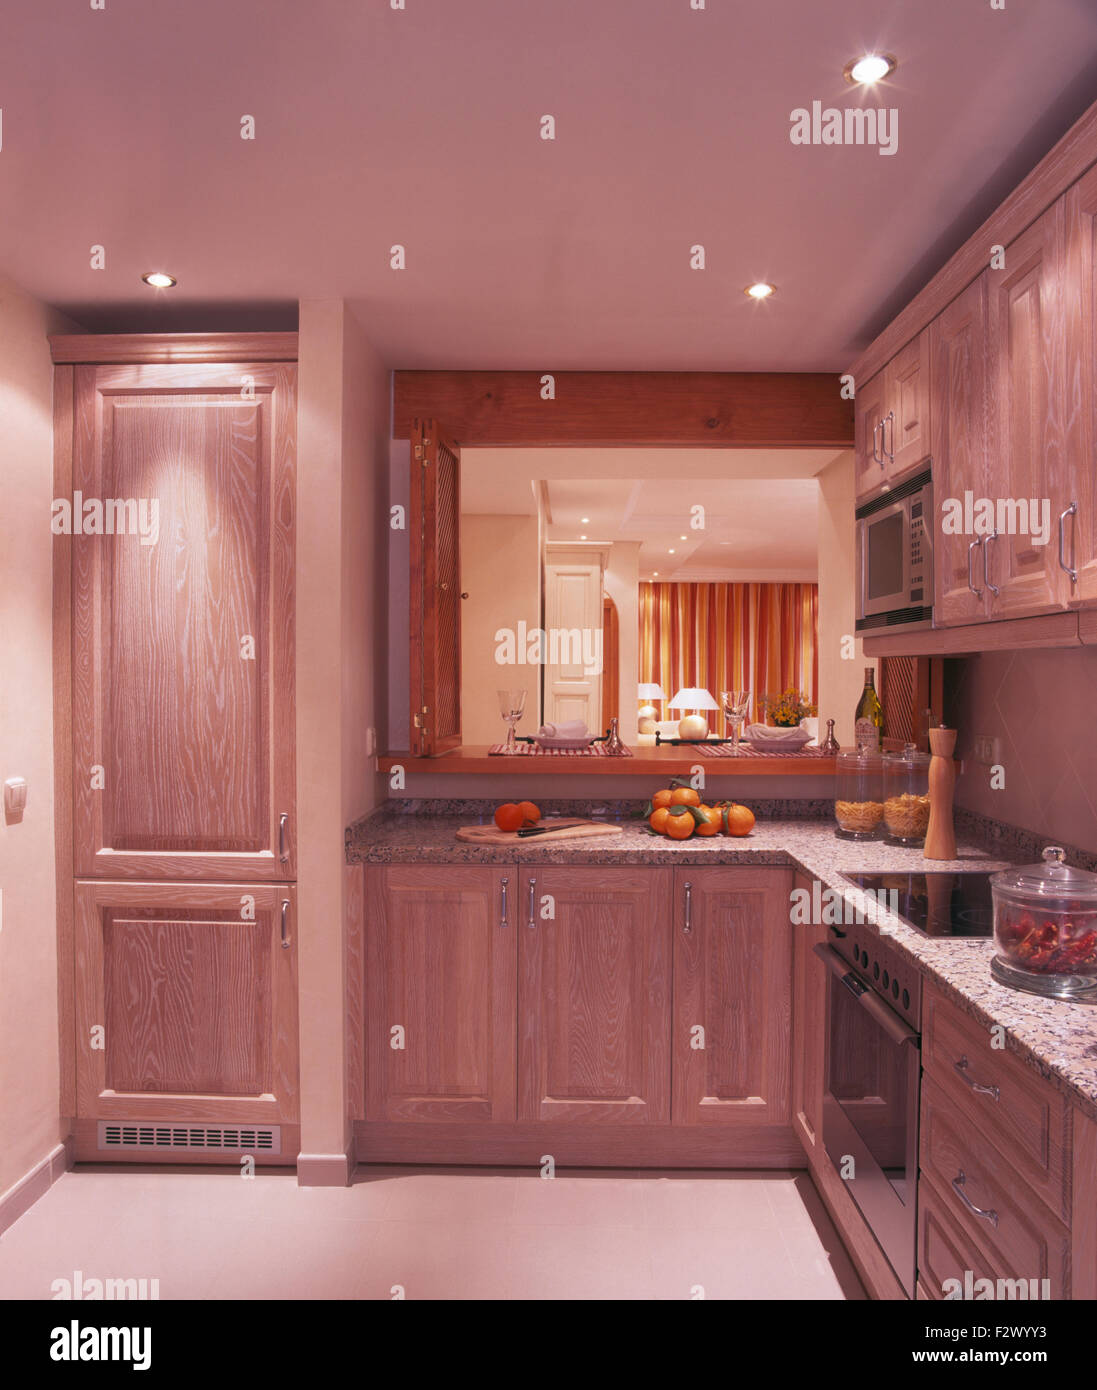 Recessed lighting in modern Spanish kitchen with a hatch and fitted cupboards with wooden doors - Stock Image